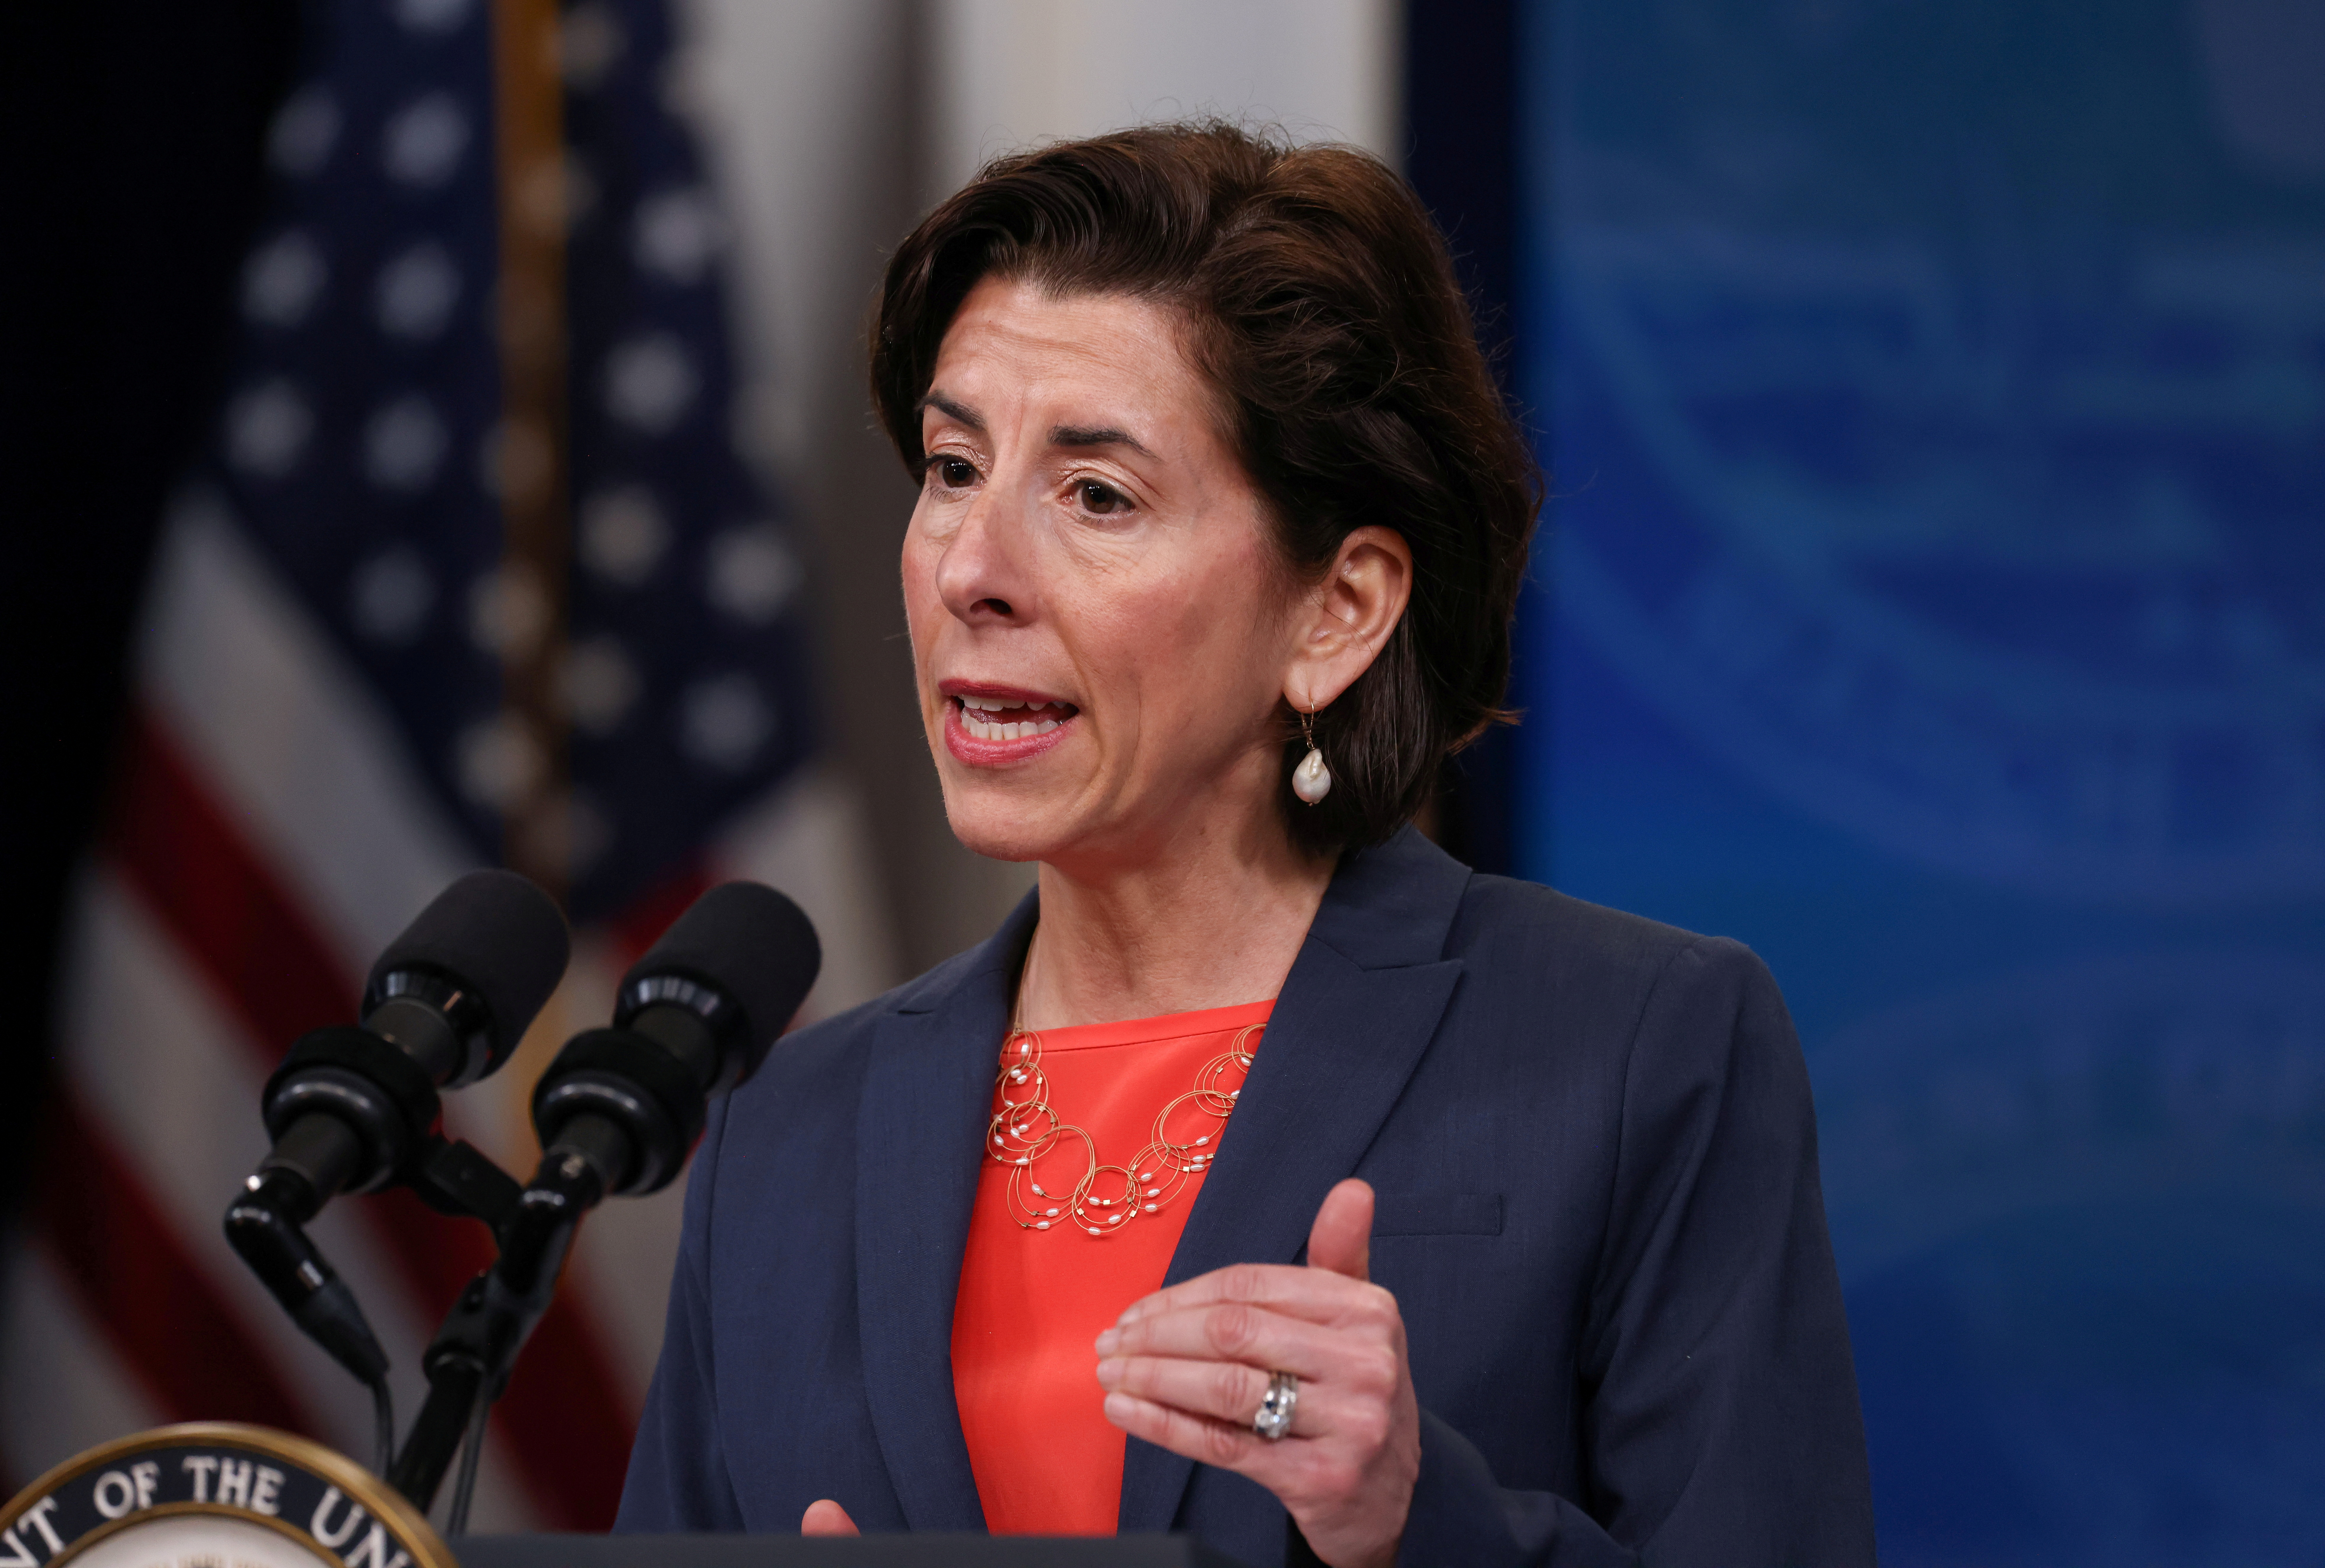 U.S. Secretary of Commerce Gina Raimondo speaks during a high speed internet event at the Eisenhower Executive Office Building's South Court Auditorium at the White House in Washington, U.S., June 3, 2021.REUTERS/Evelyn Hockstein/File Photo